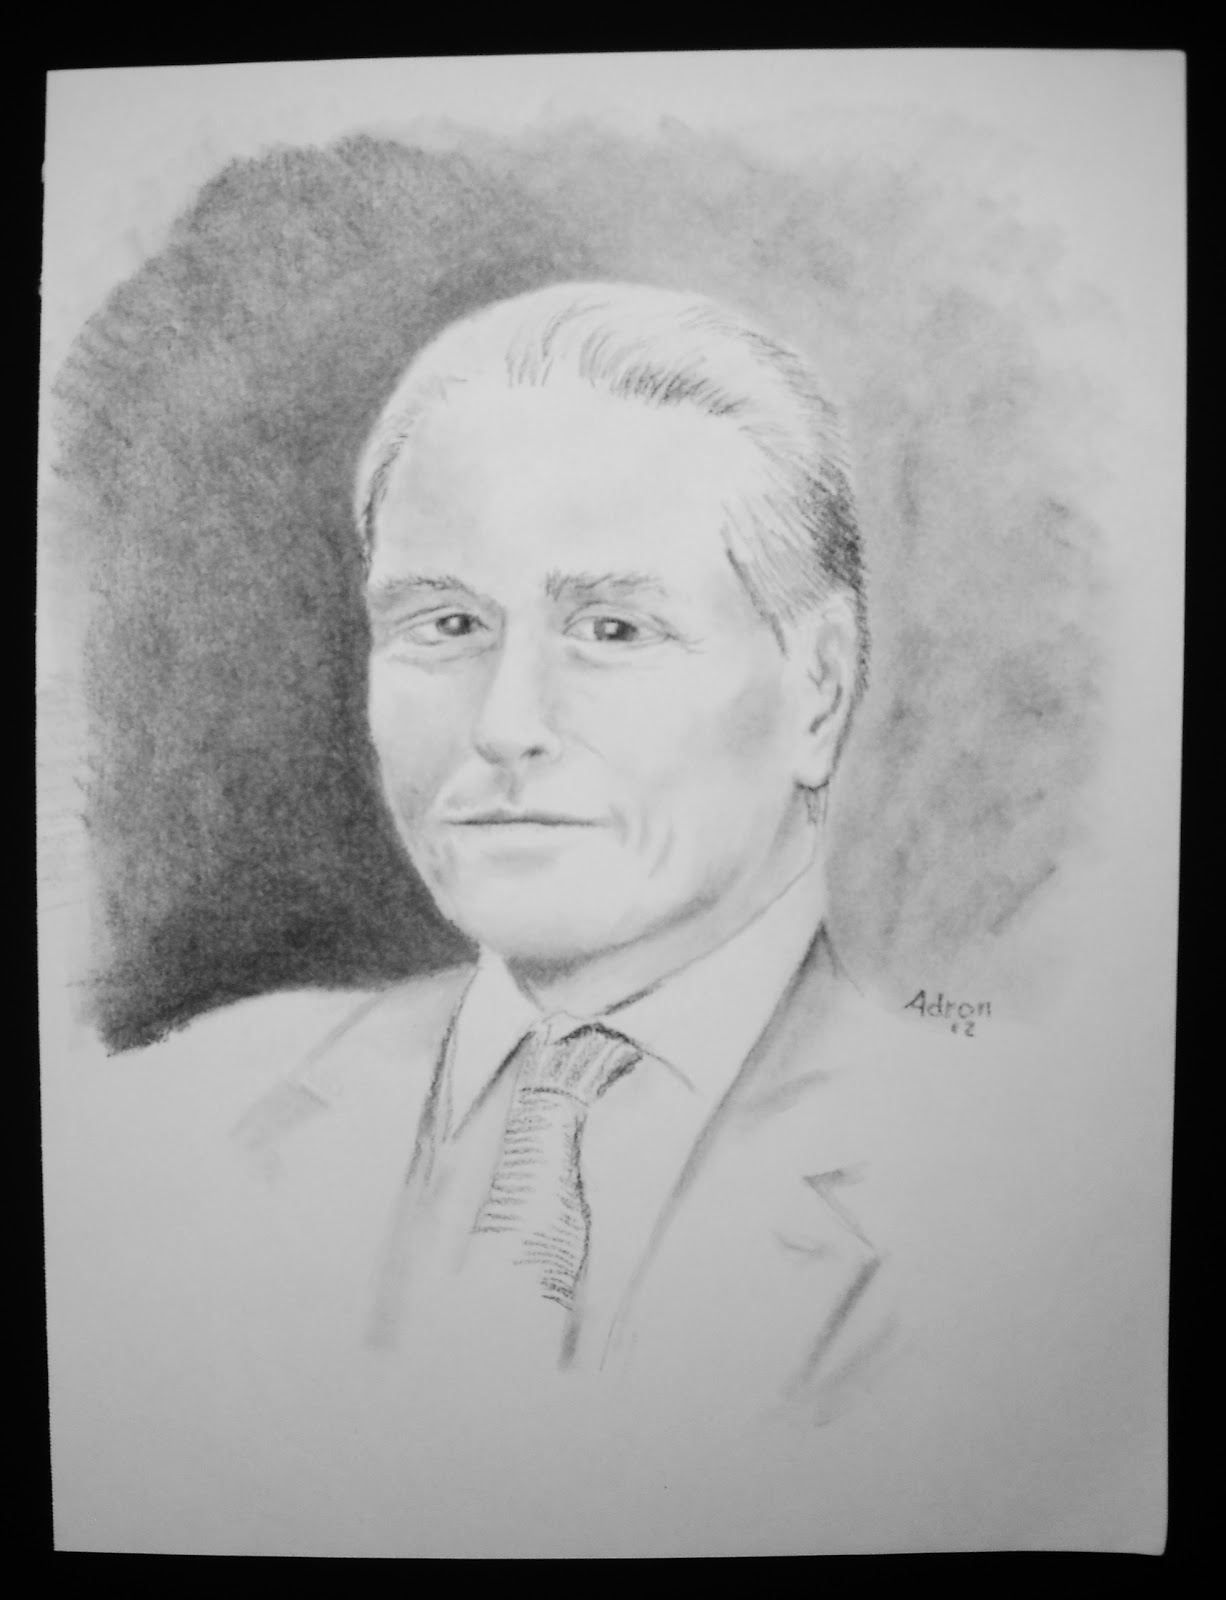 Portraits By Adron Charcoal Sketch Of Man With Silver Hair